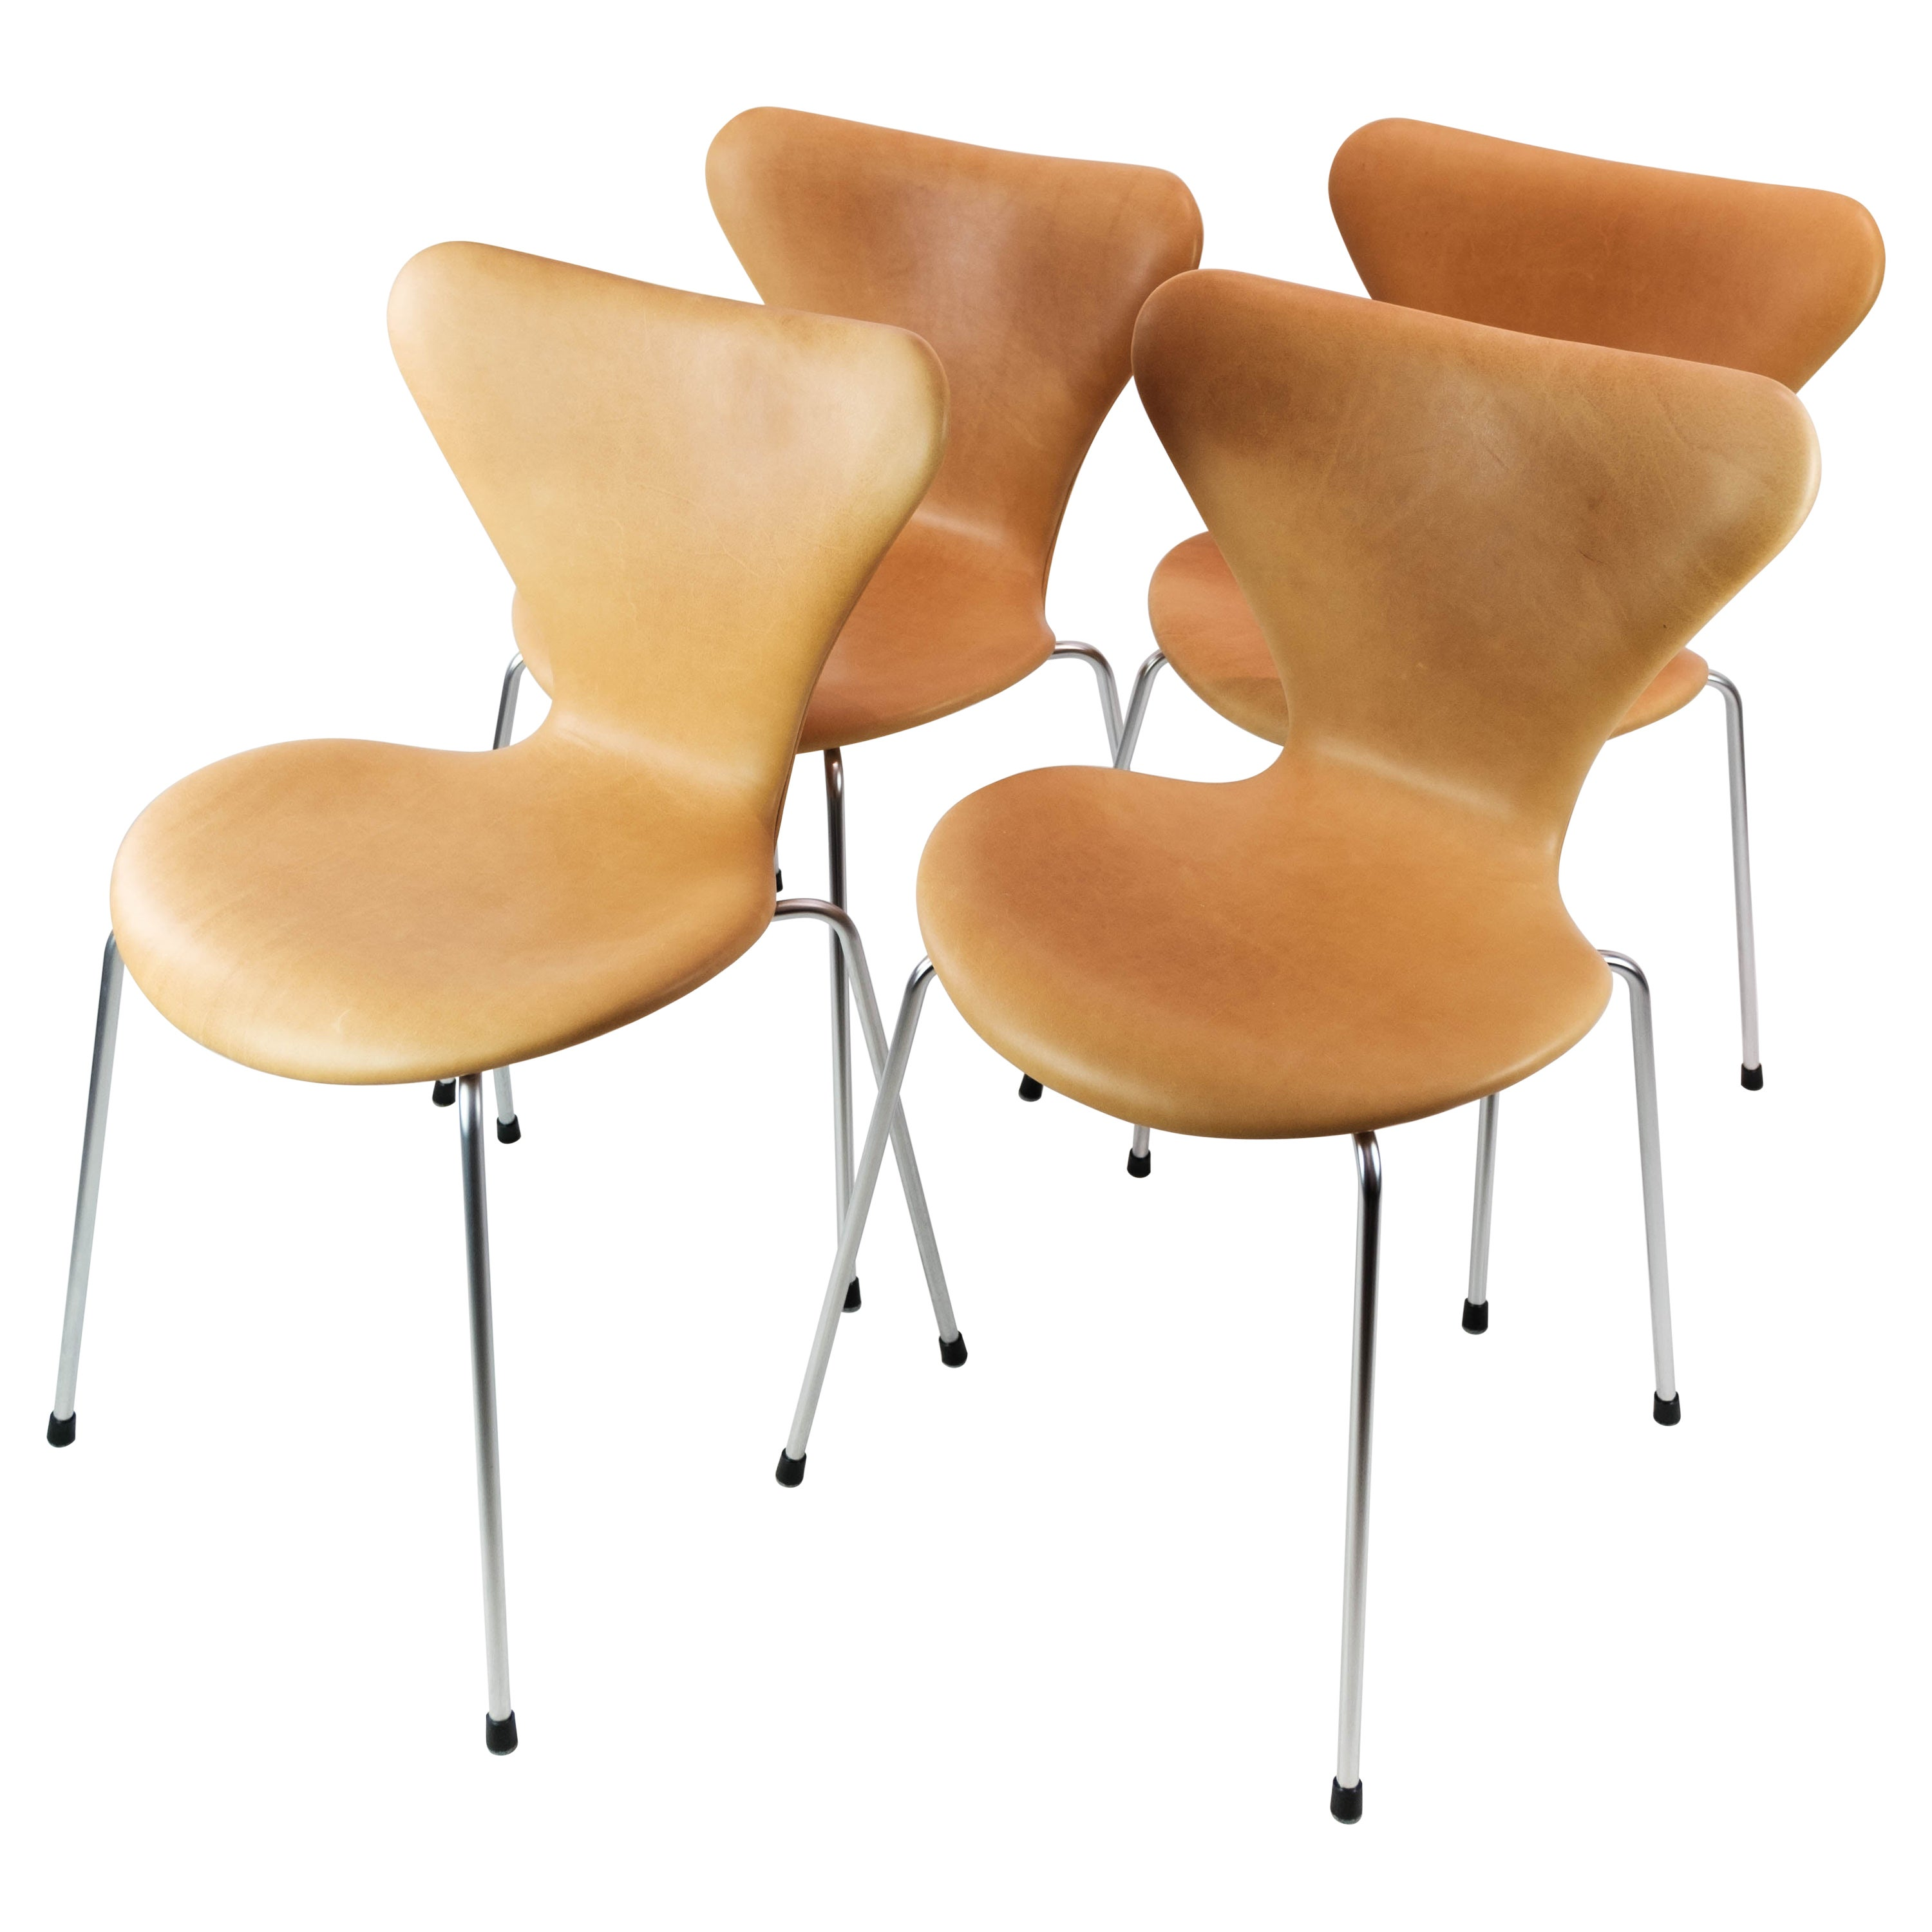 Set of 4 Seven Chairs, Model 3107, by Arne Jacobsen and Fritz Hansen, 1973